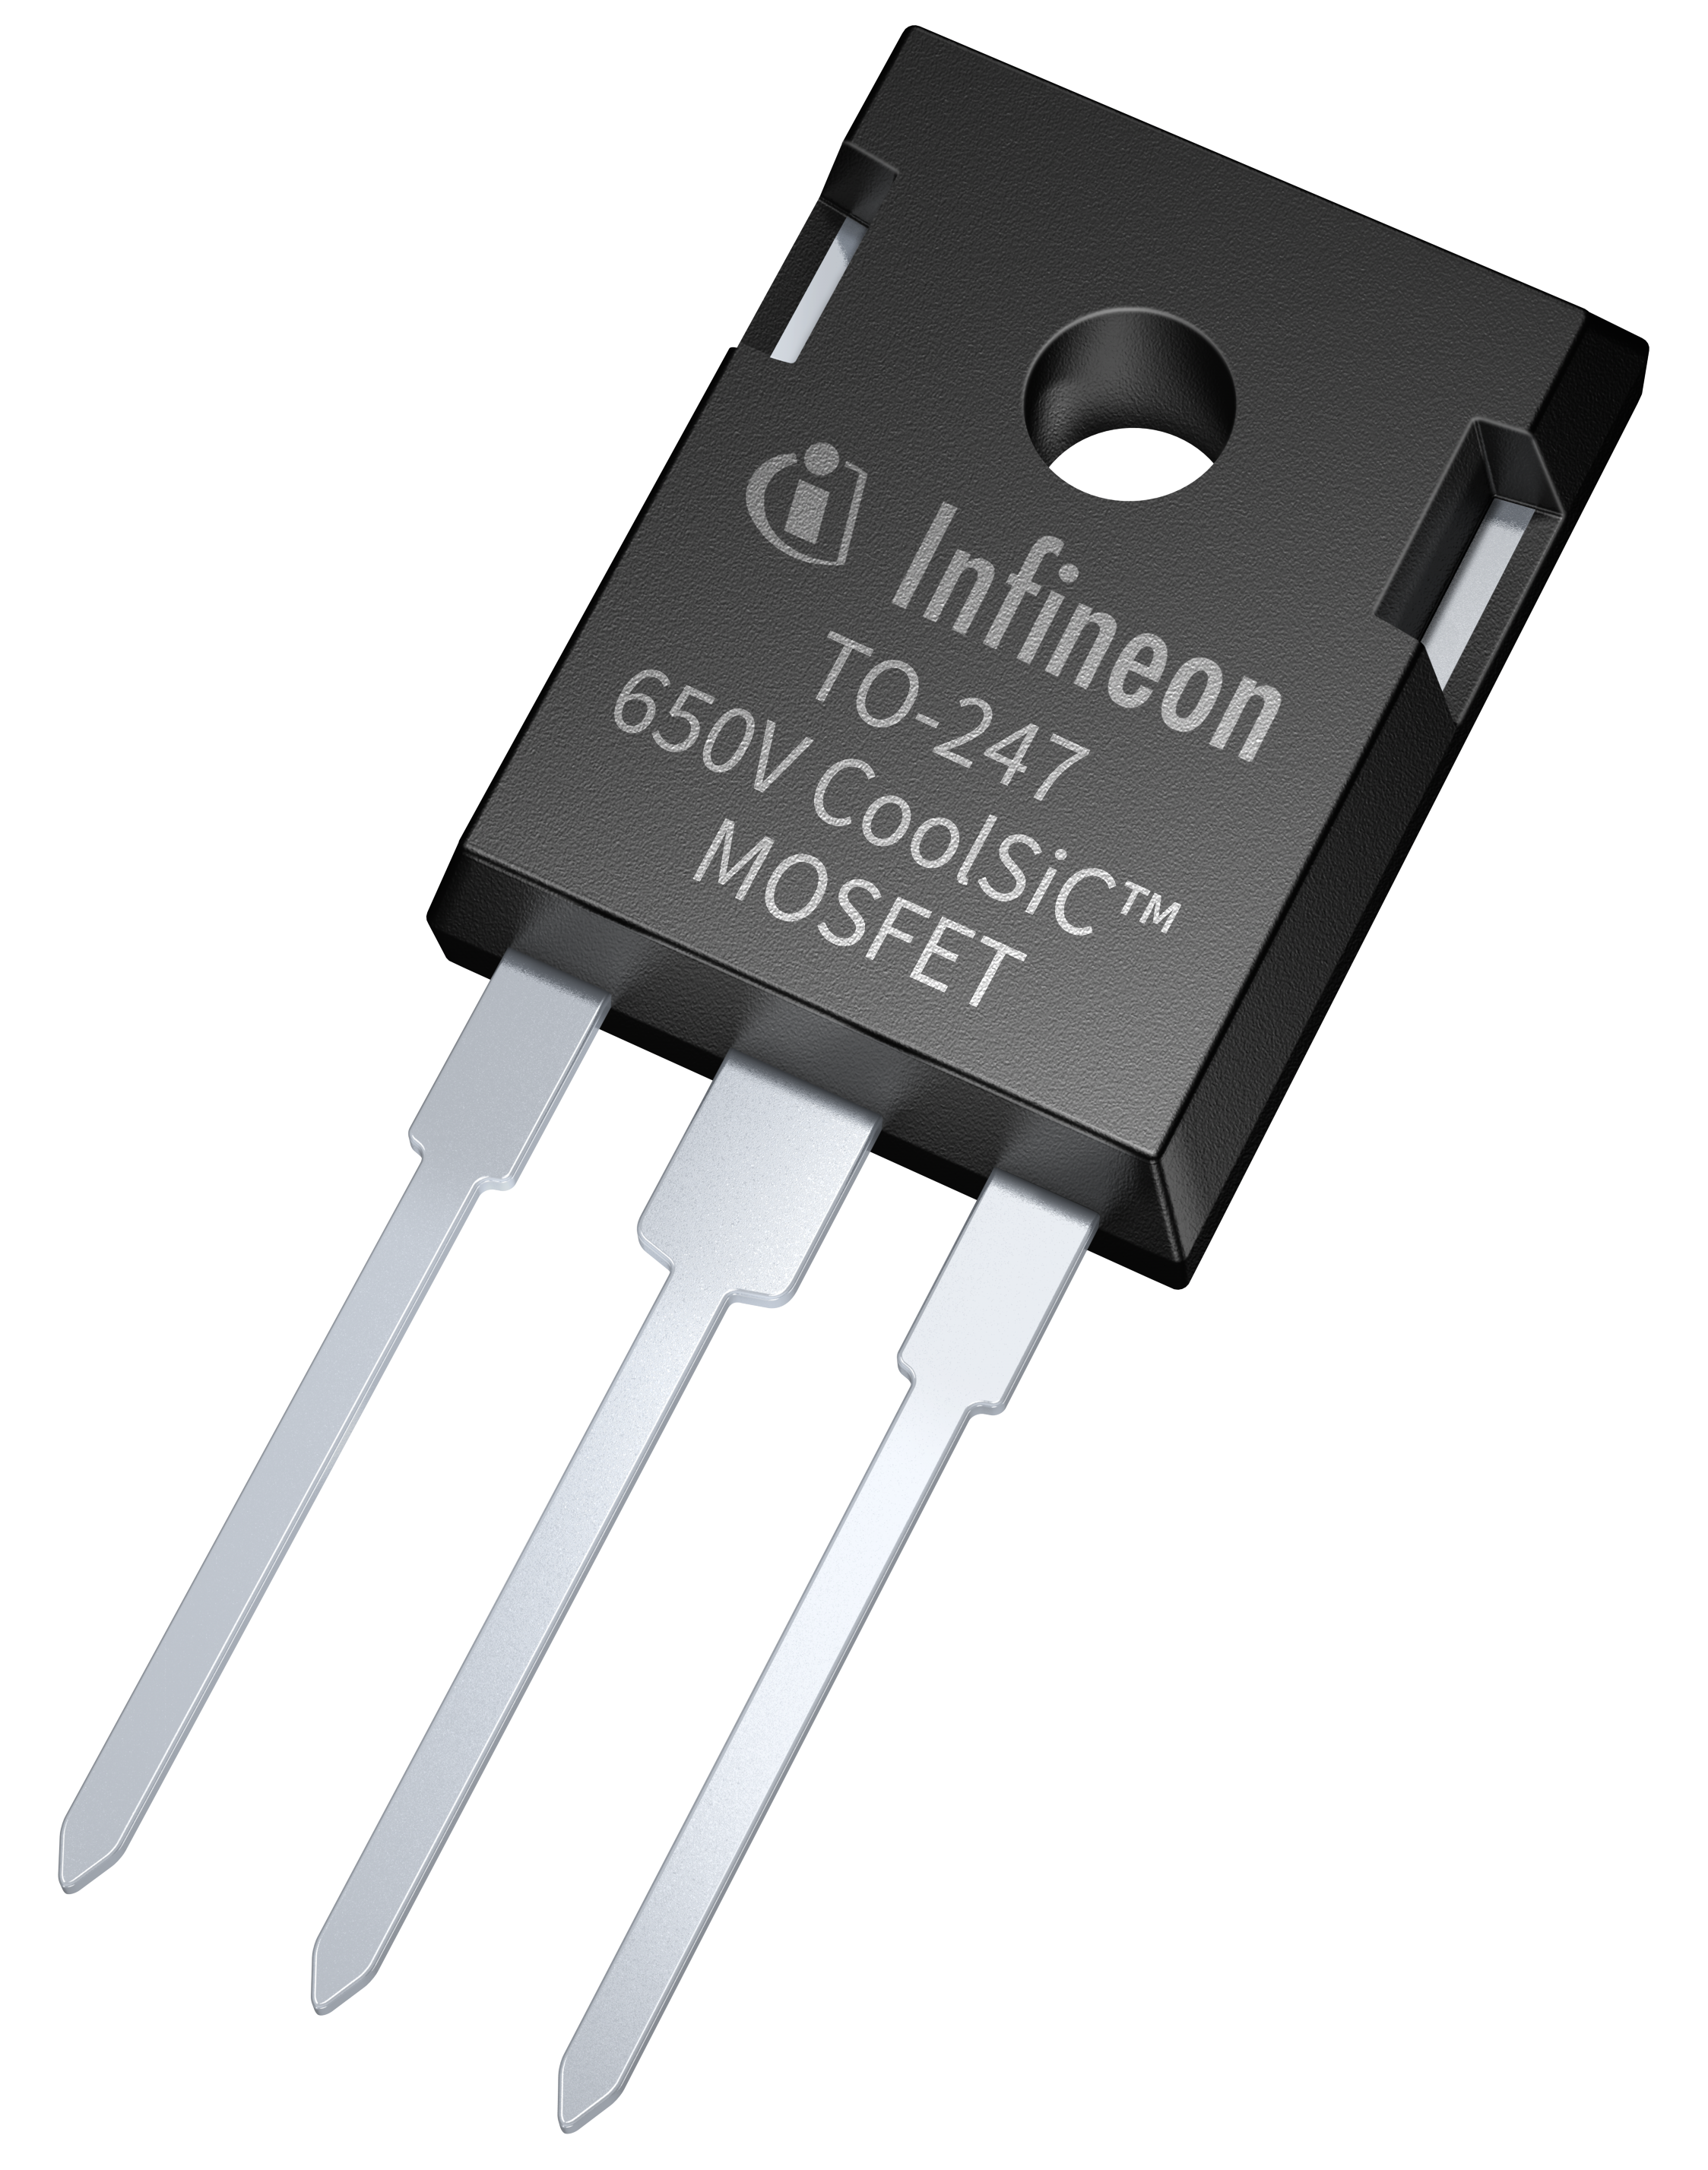 650V_CoolSiC_MOSFET_TO247-3.png